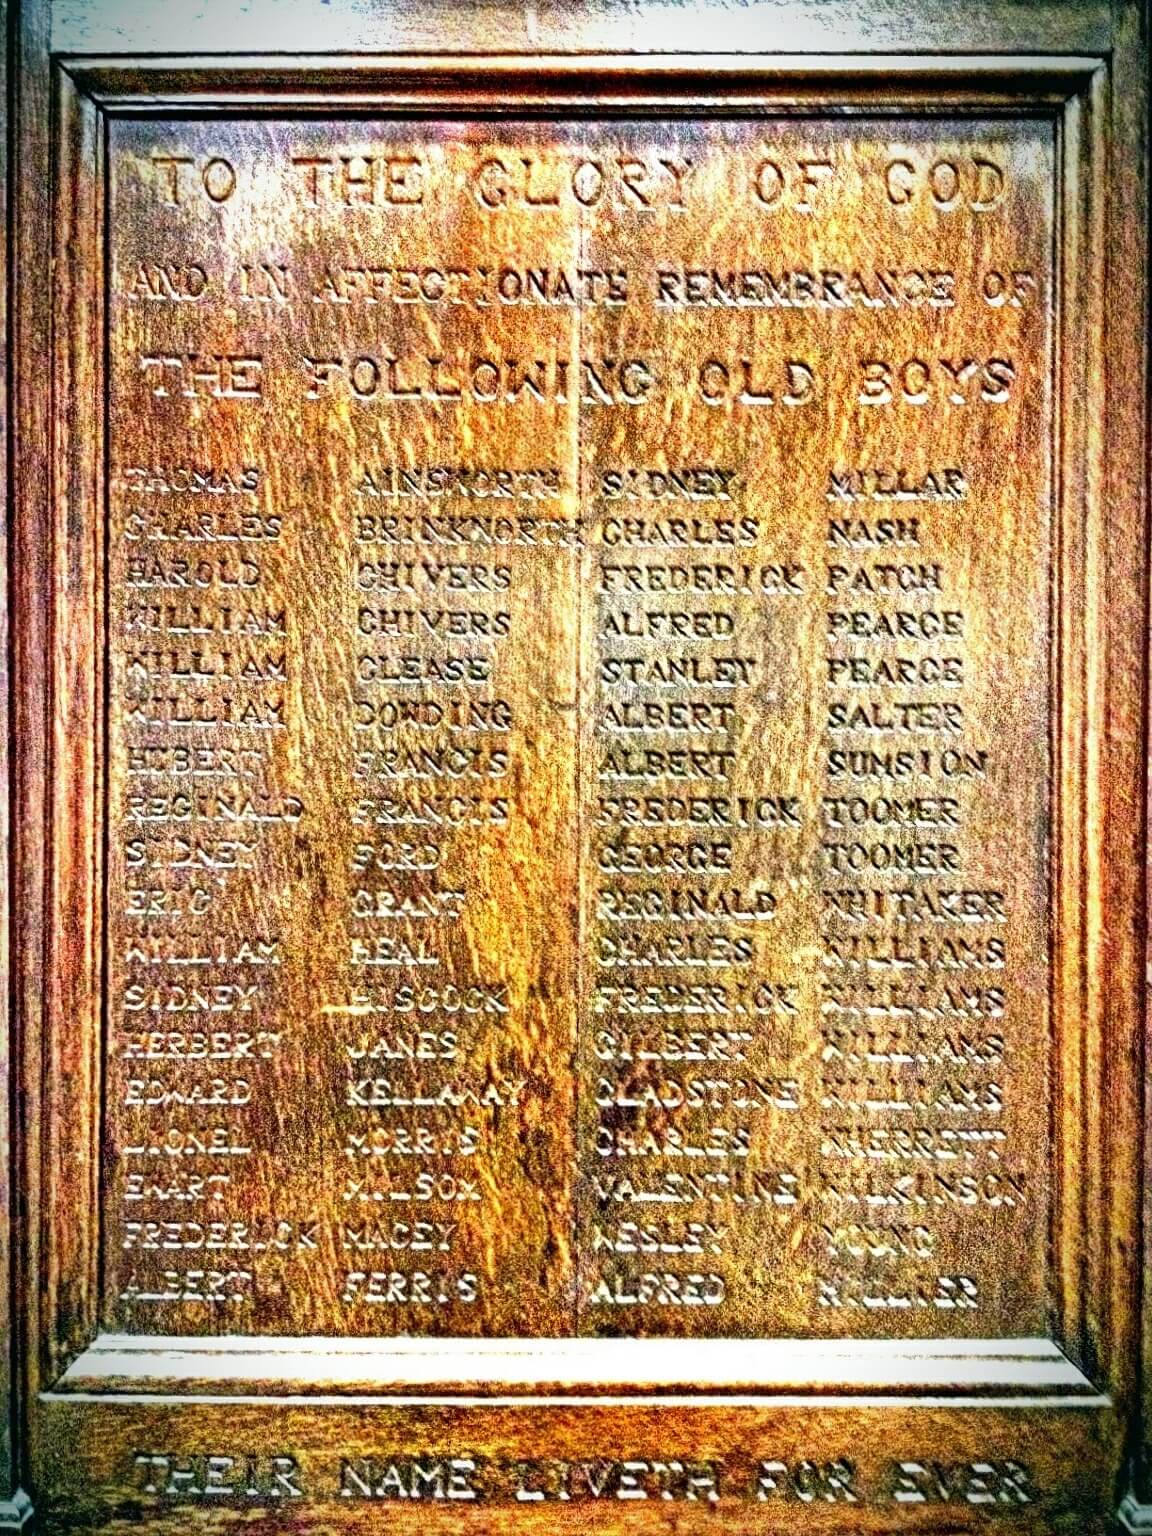 Combe Down school war memorial board